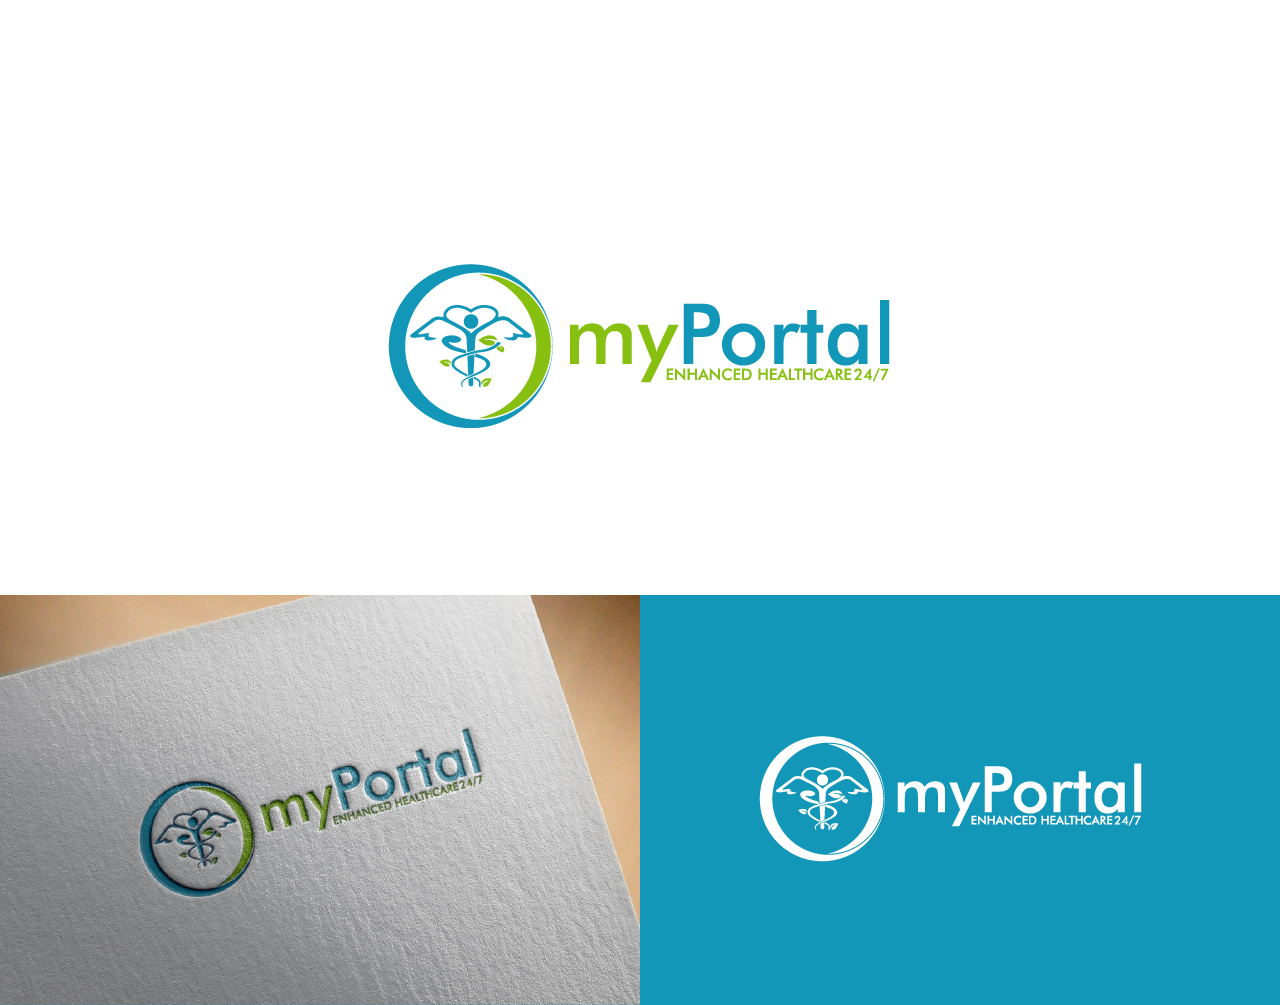 Create a new logo for our Patient Portal to compliment our existing brand